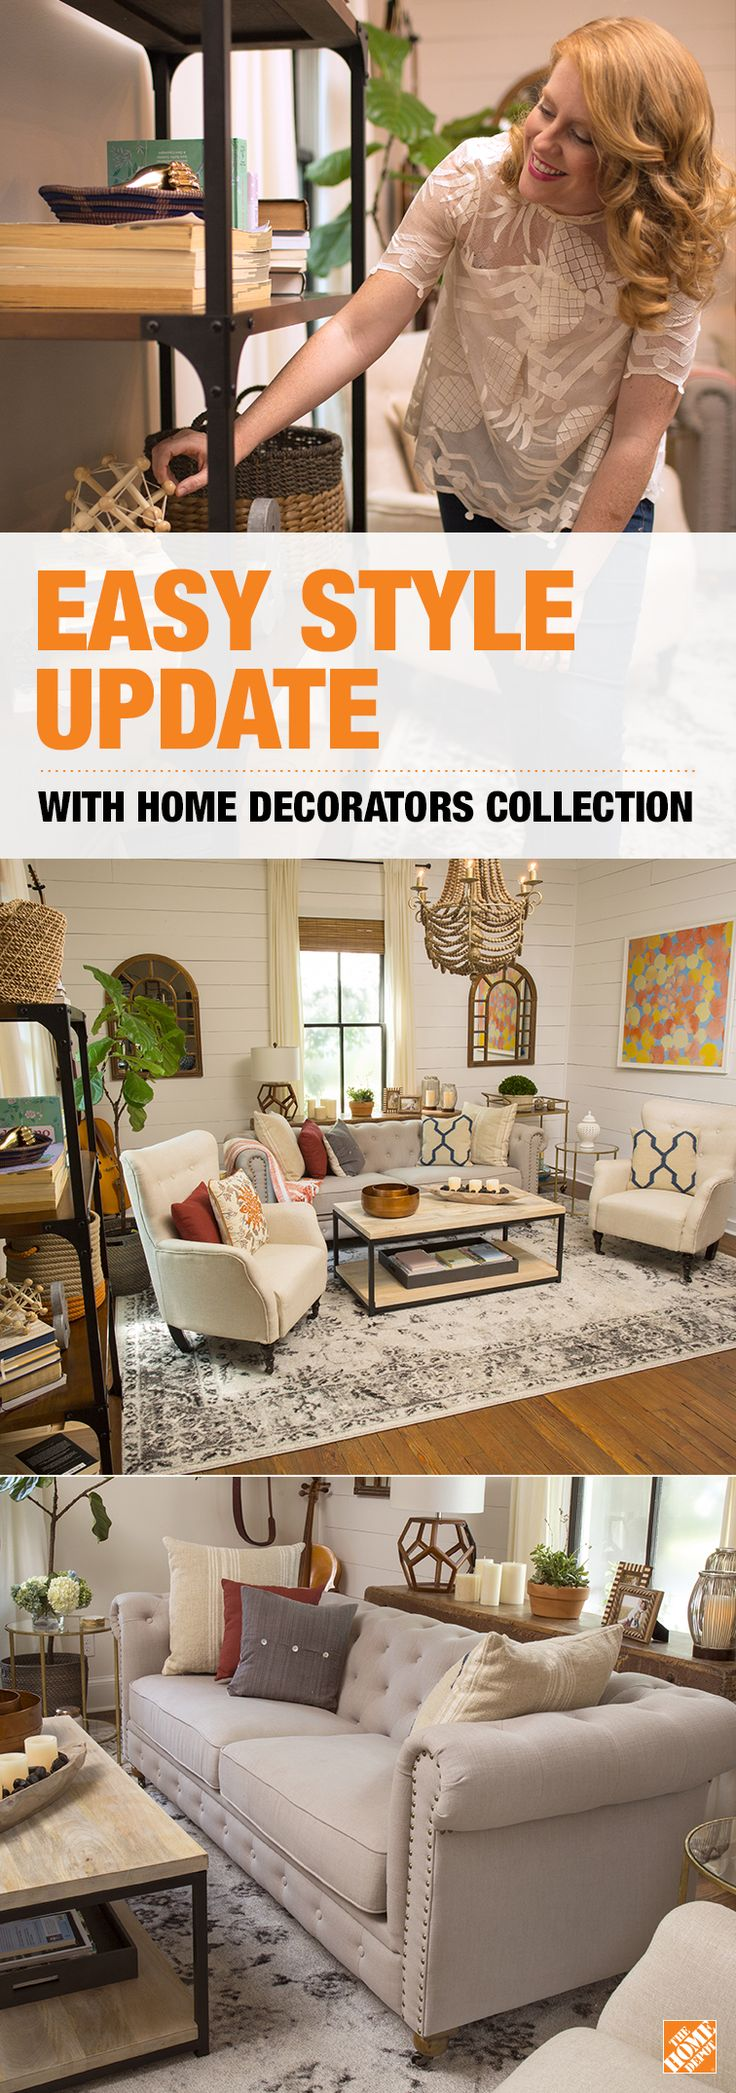 Best Images About Home Decorators Collection On Pinterest - Home designers collection